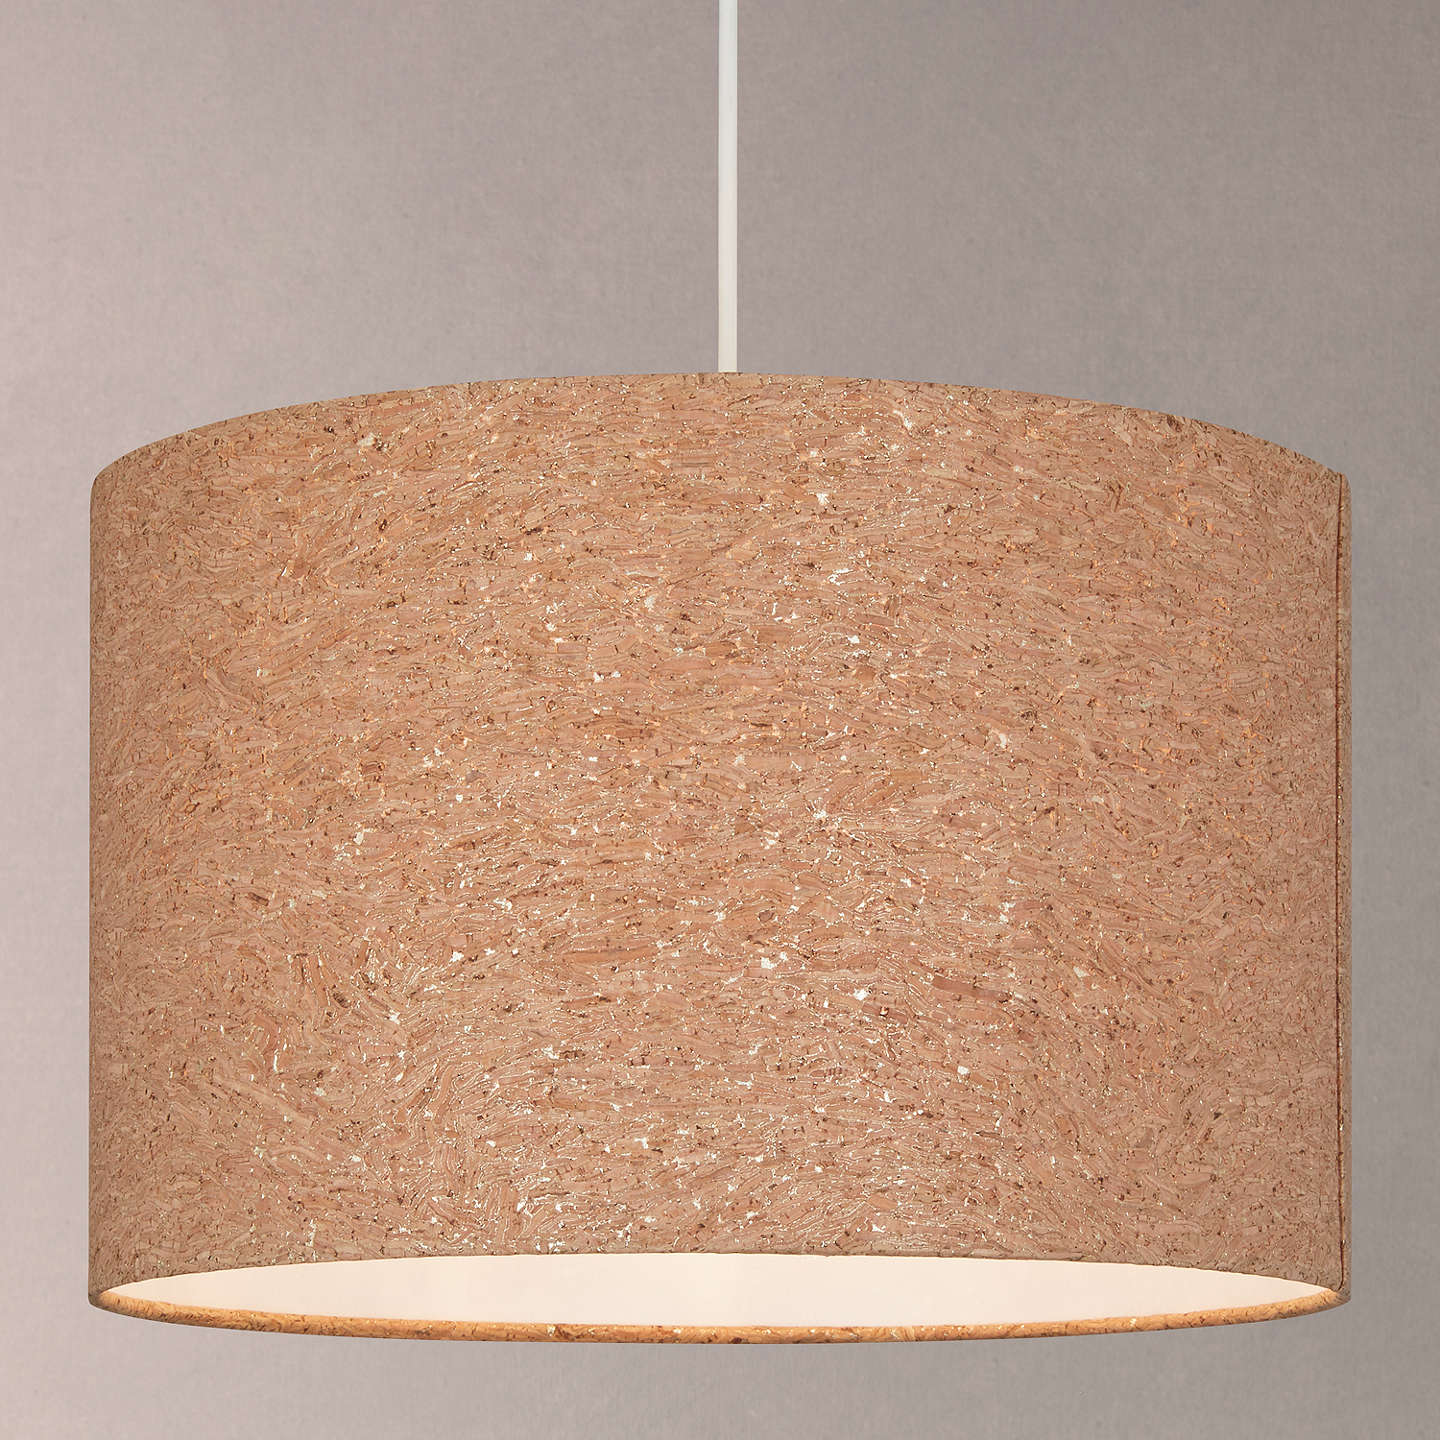 House by john lewis chloe cork flecked lampshade natural at john lewis buyhouse by john lewis chloe cork flecked lampshade natural dia25cm online at mozeypictures Choice Image